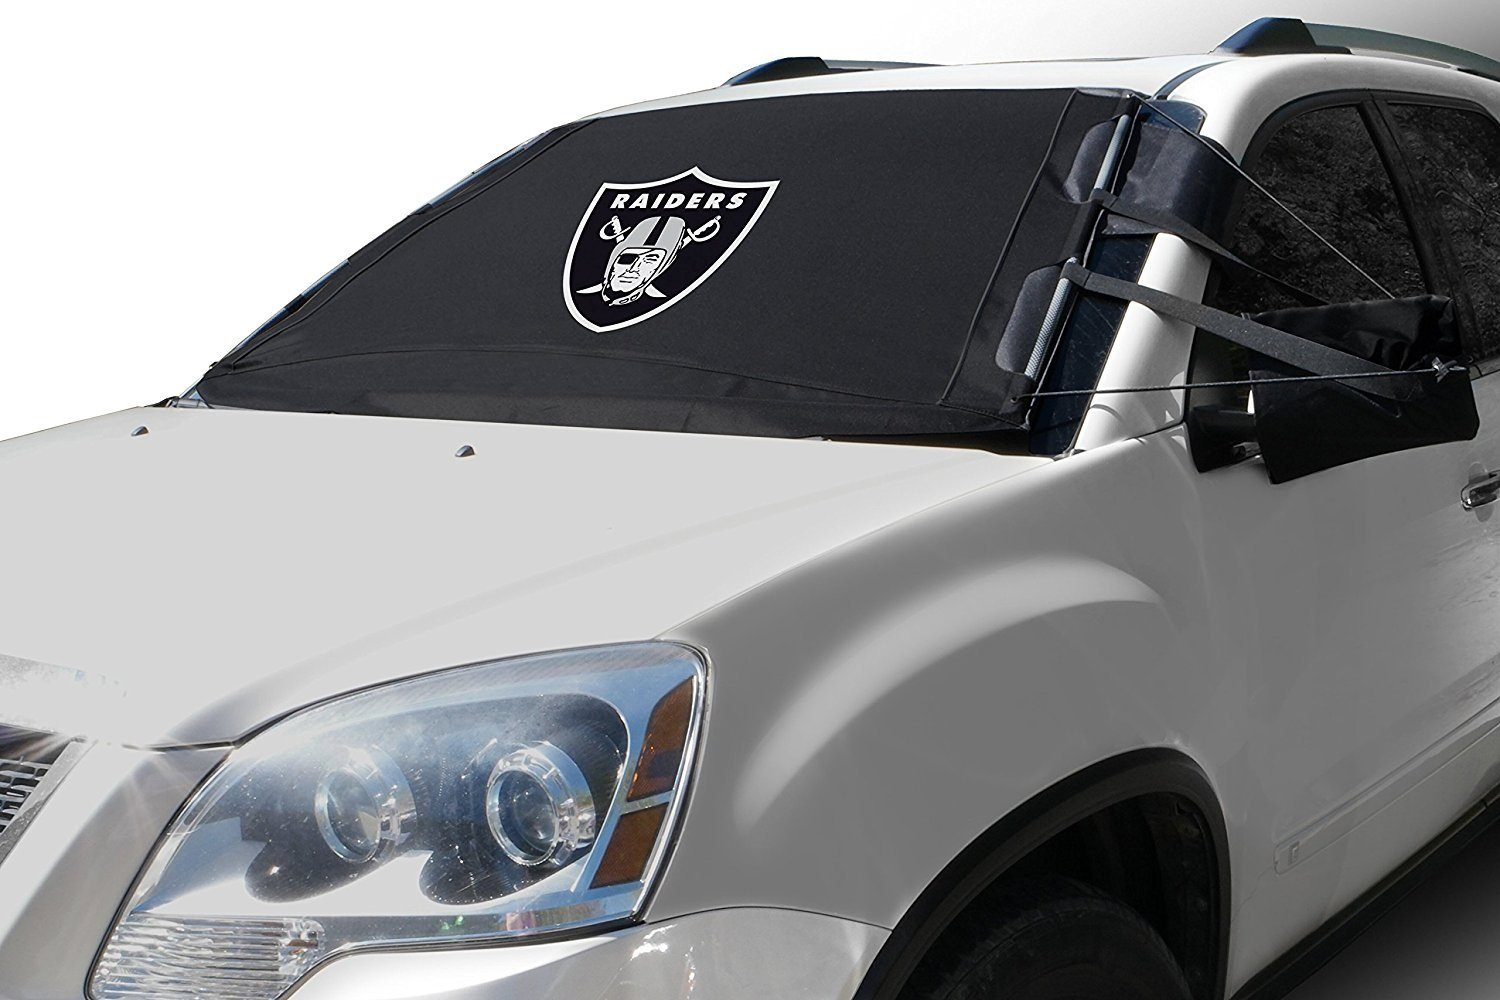 FrostGuard NFL Premium Winter Windshield Cover for Snow, Frost and Ice - Cold Weather Protection for Your Vehicle – Oakland Raiders, Standard Size